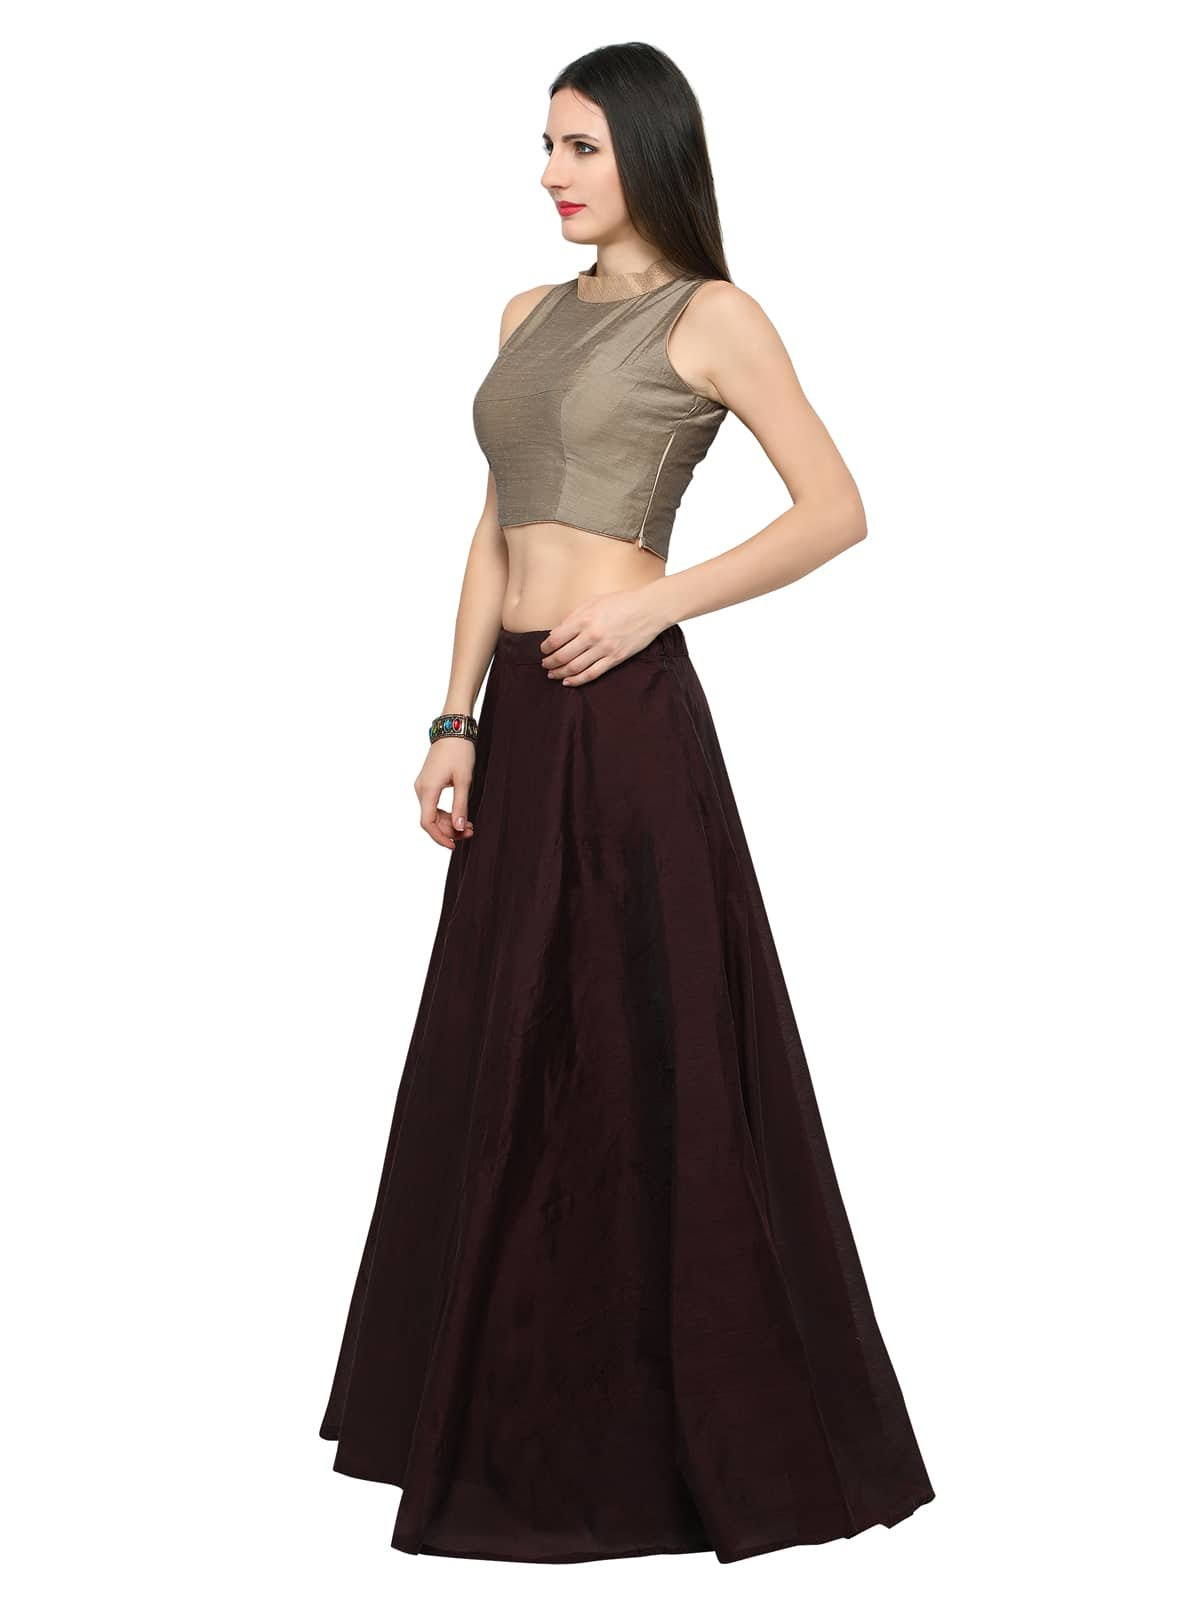 338b383bdc6 Inddus Women s Chanderi Cotton Semi-Stitched Lehenga choli (Brown ...